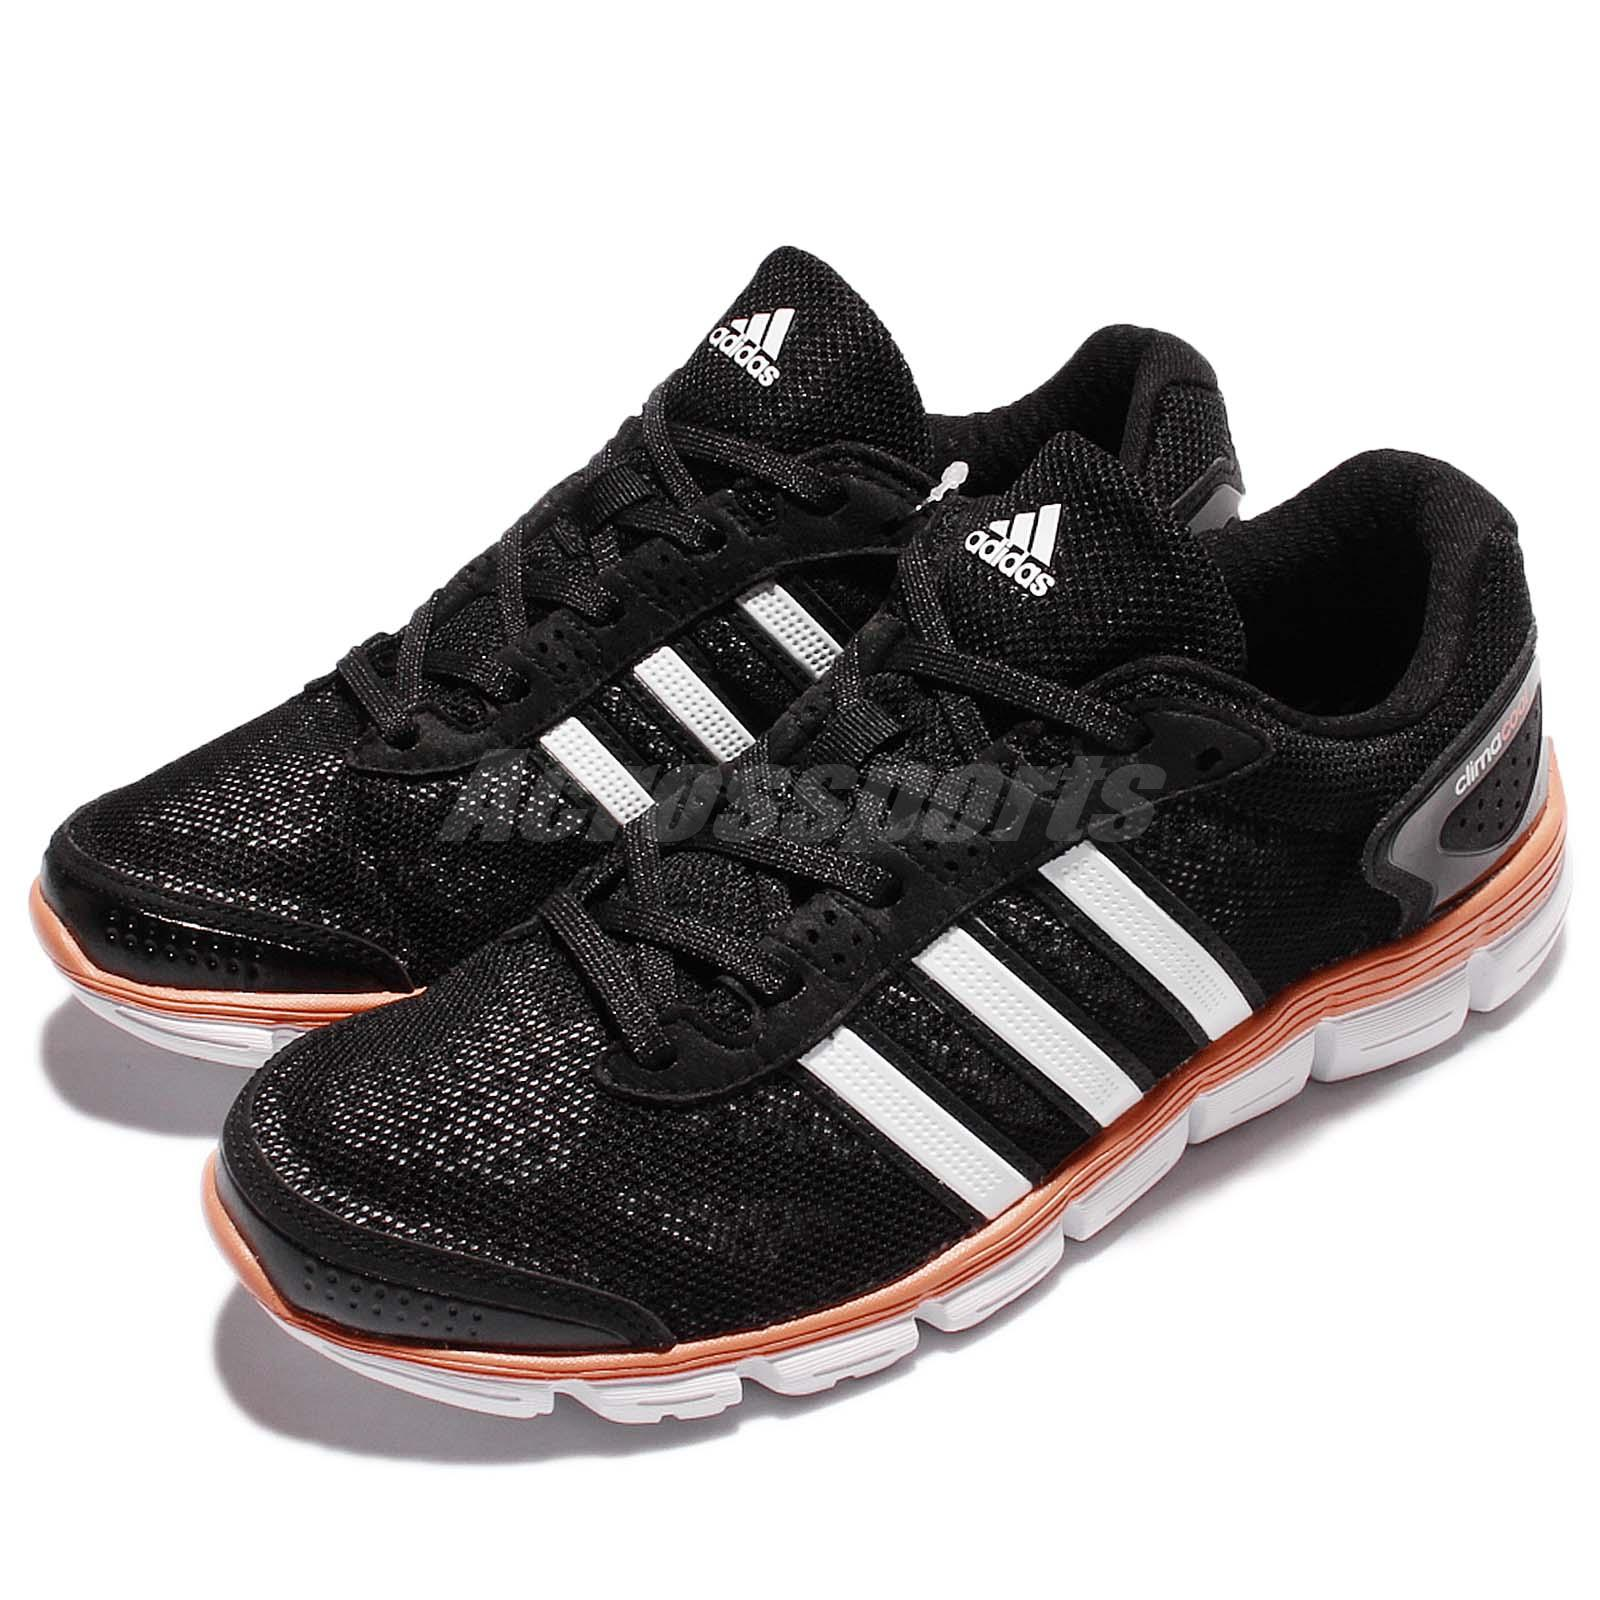 1ea91b780dc9e Details about 50% Off adidas CC Fresh W Climacool Black Orange Women  Running Shoes S76762